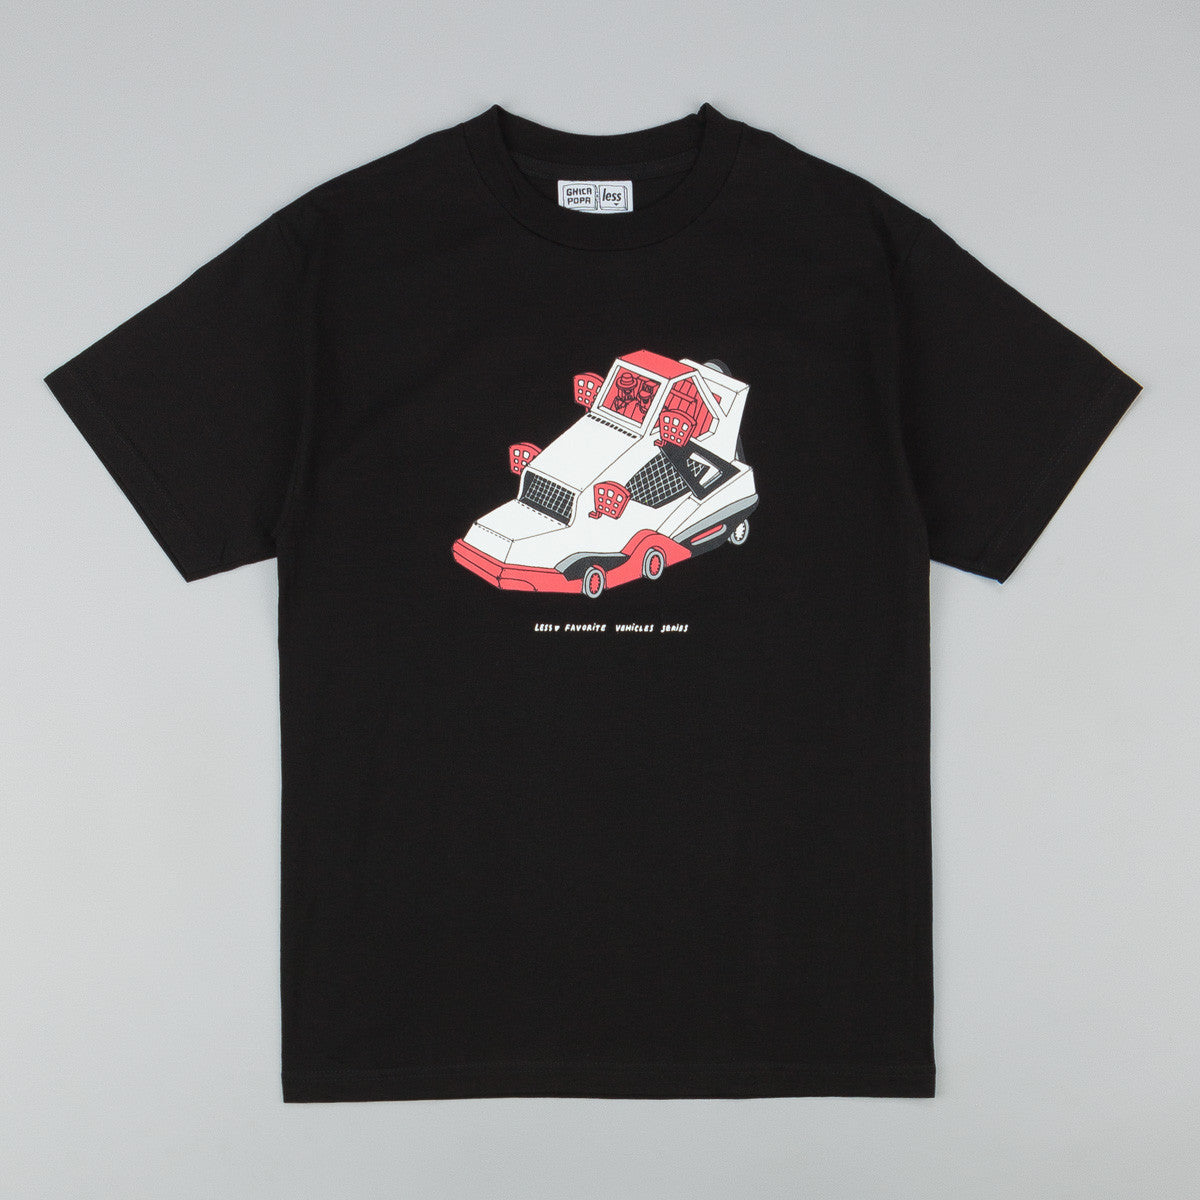 Less x Ghica Popa Vehicles Series AJ4 T-Shirt - Black